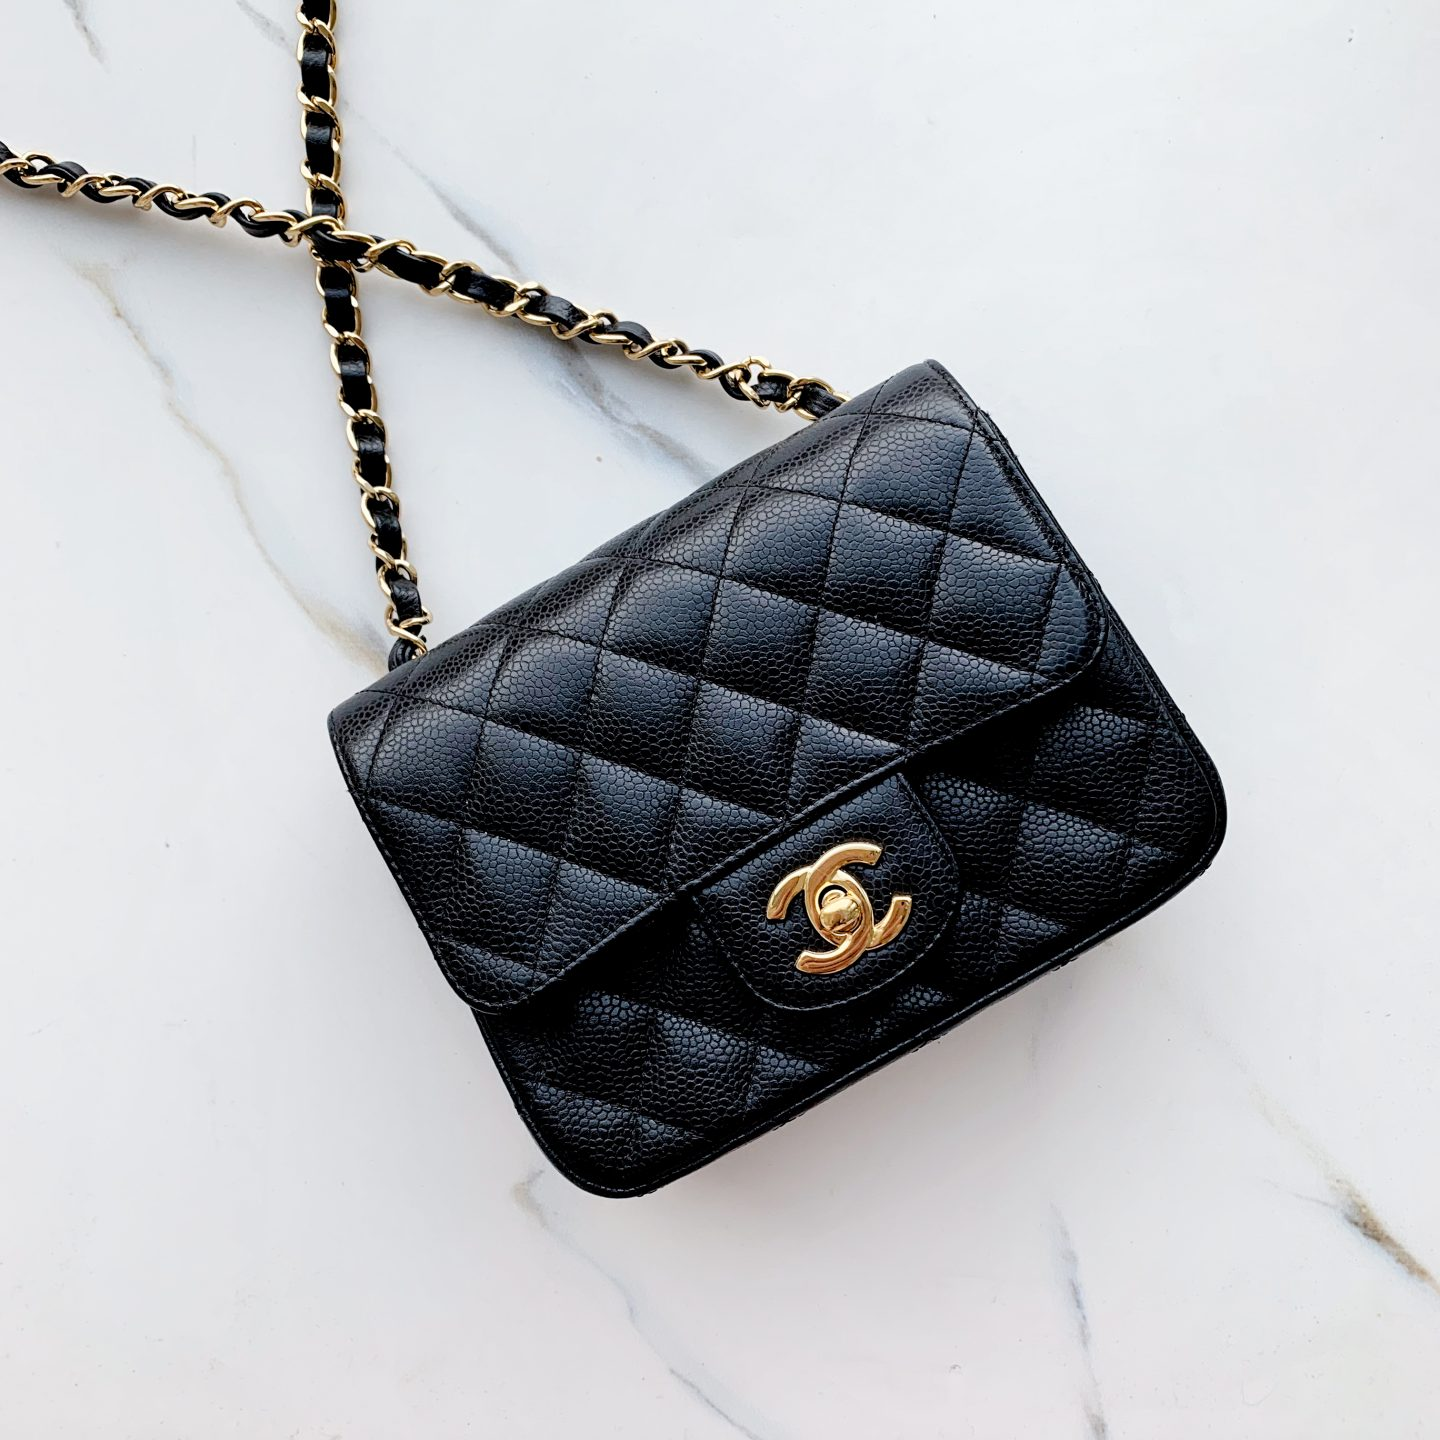 7d81b3cfade7 Leather and colour are also important factors to consider when deciding on  your first Chanel bag. Chanel offer many different varieties however the  two most ...